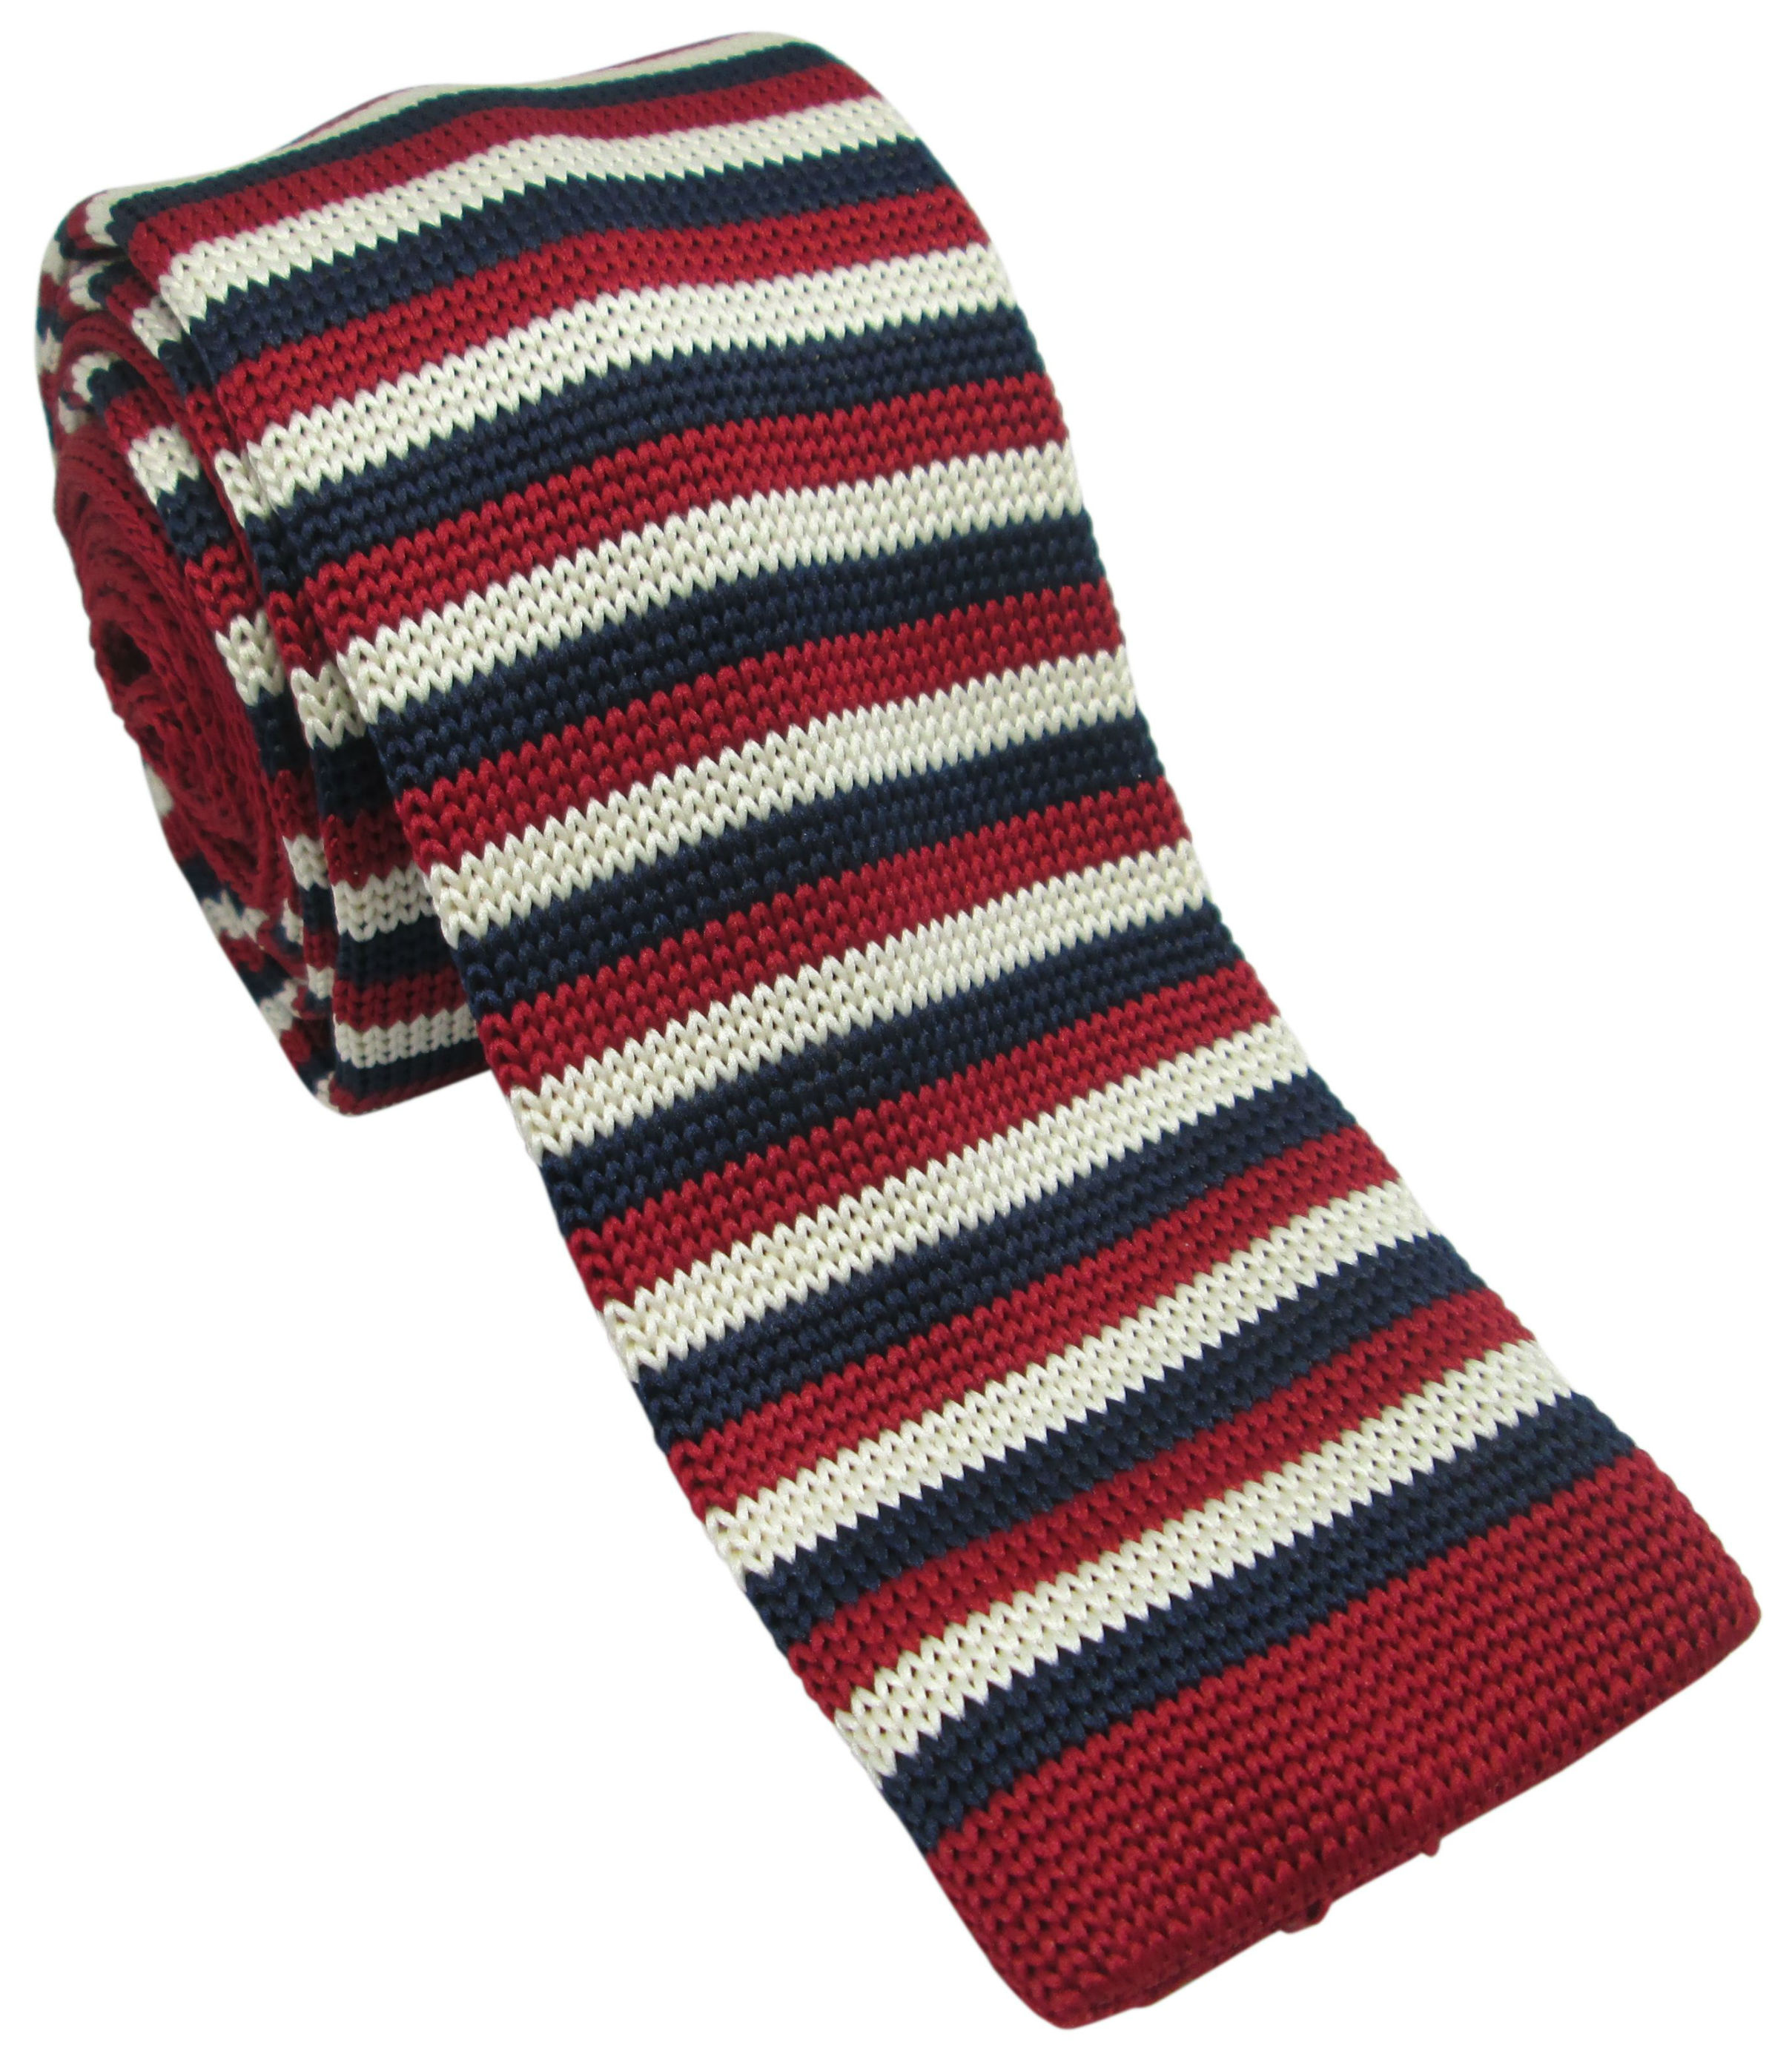 Burgundy, Cream and Navy Striped Knitted Tie